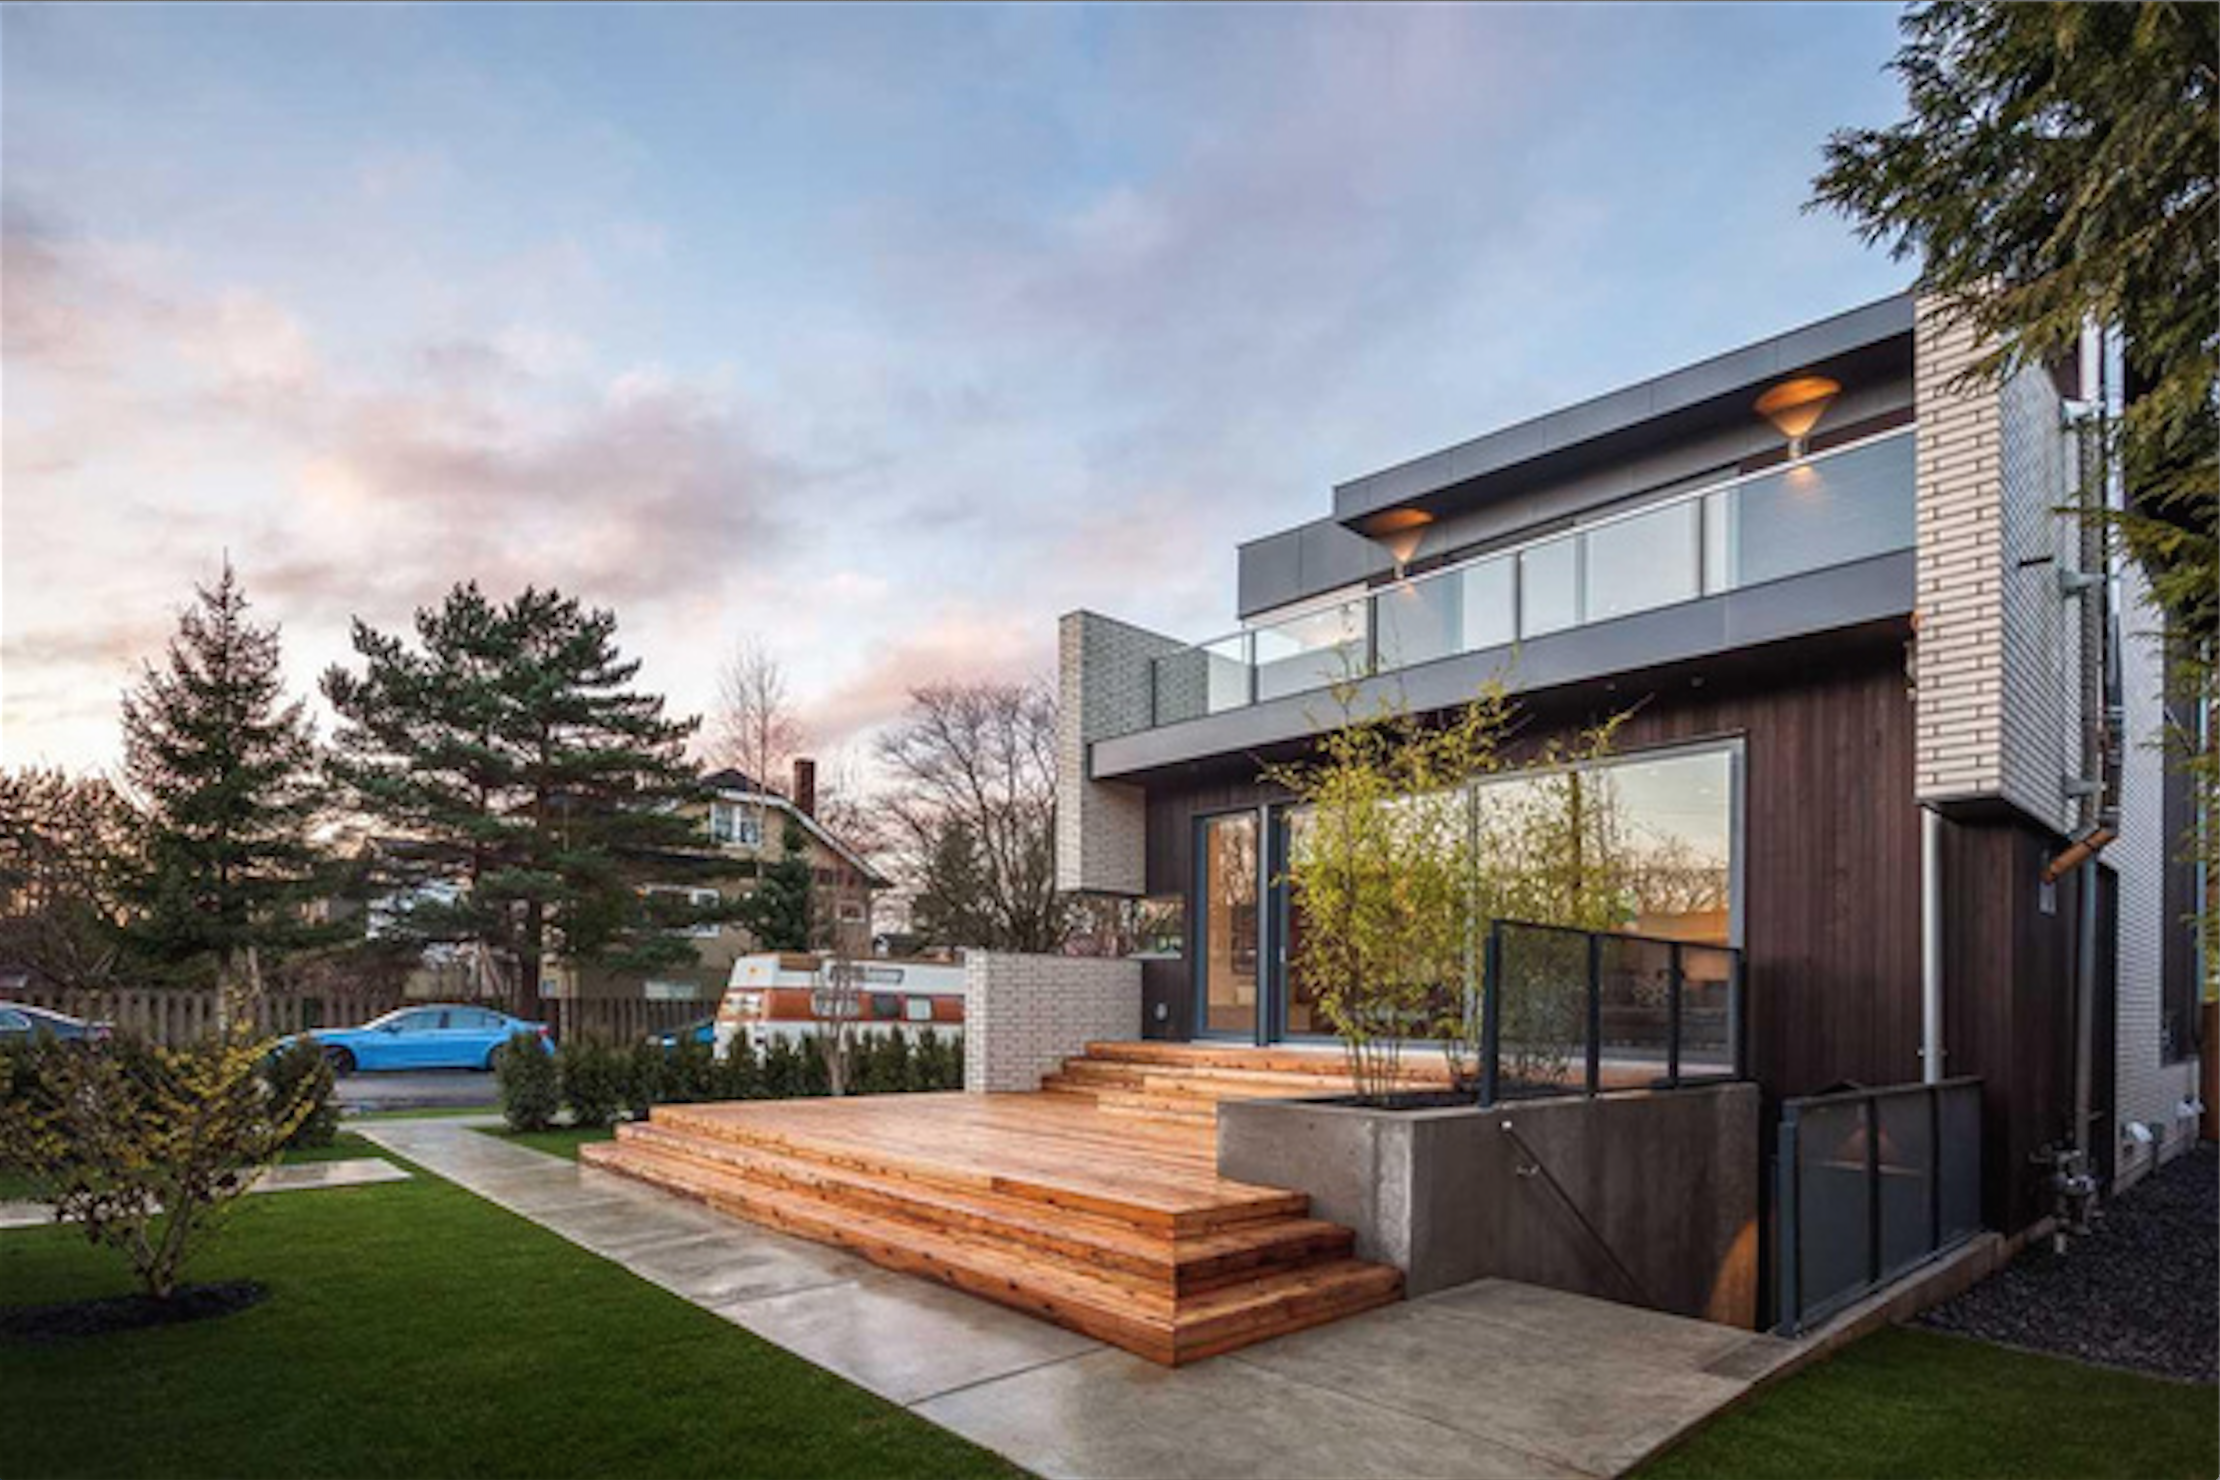 Blog › Vancouver Modern Homes lbrighton eal state, Vancouver ... - ^